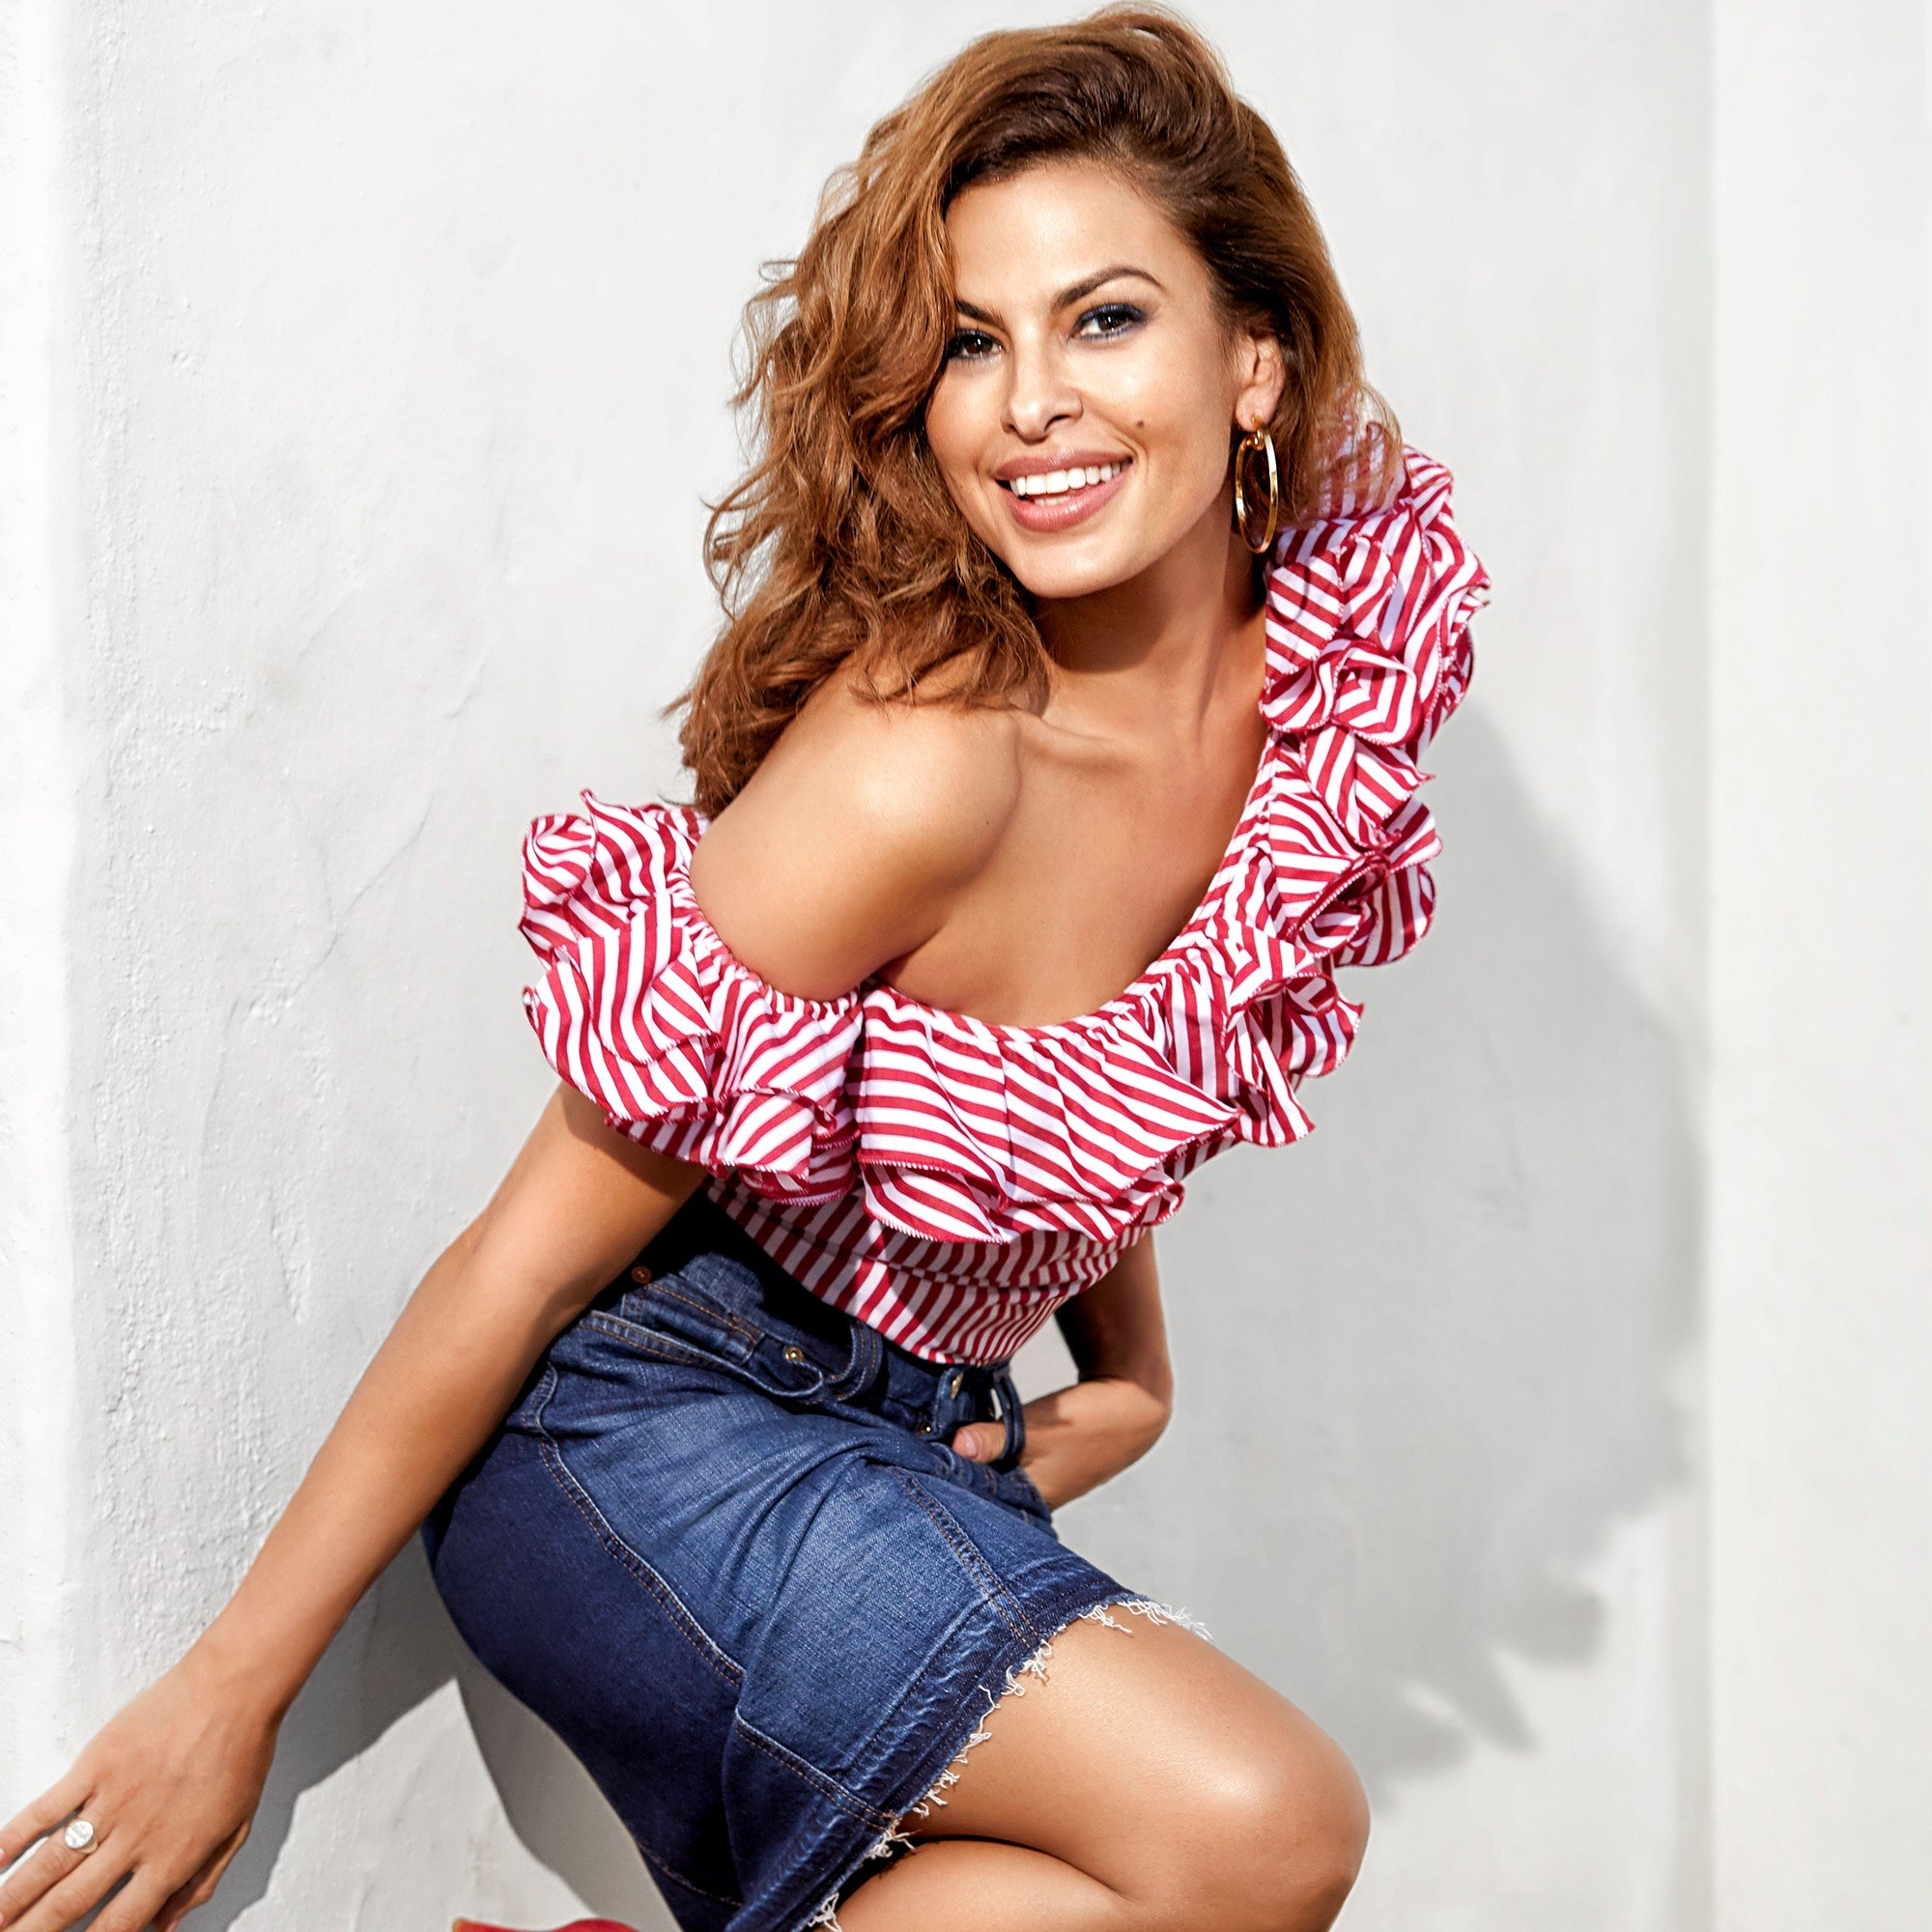 30 Hottest Pictures Of Eva Mendes Big Butt Will Make You ...